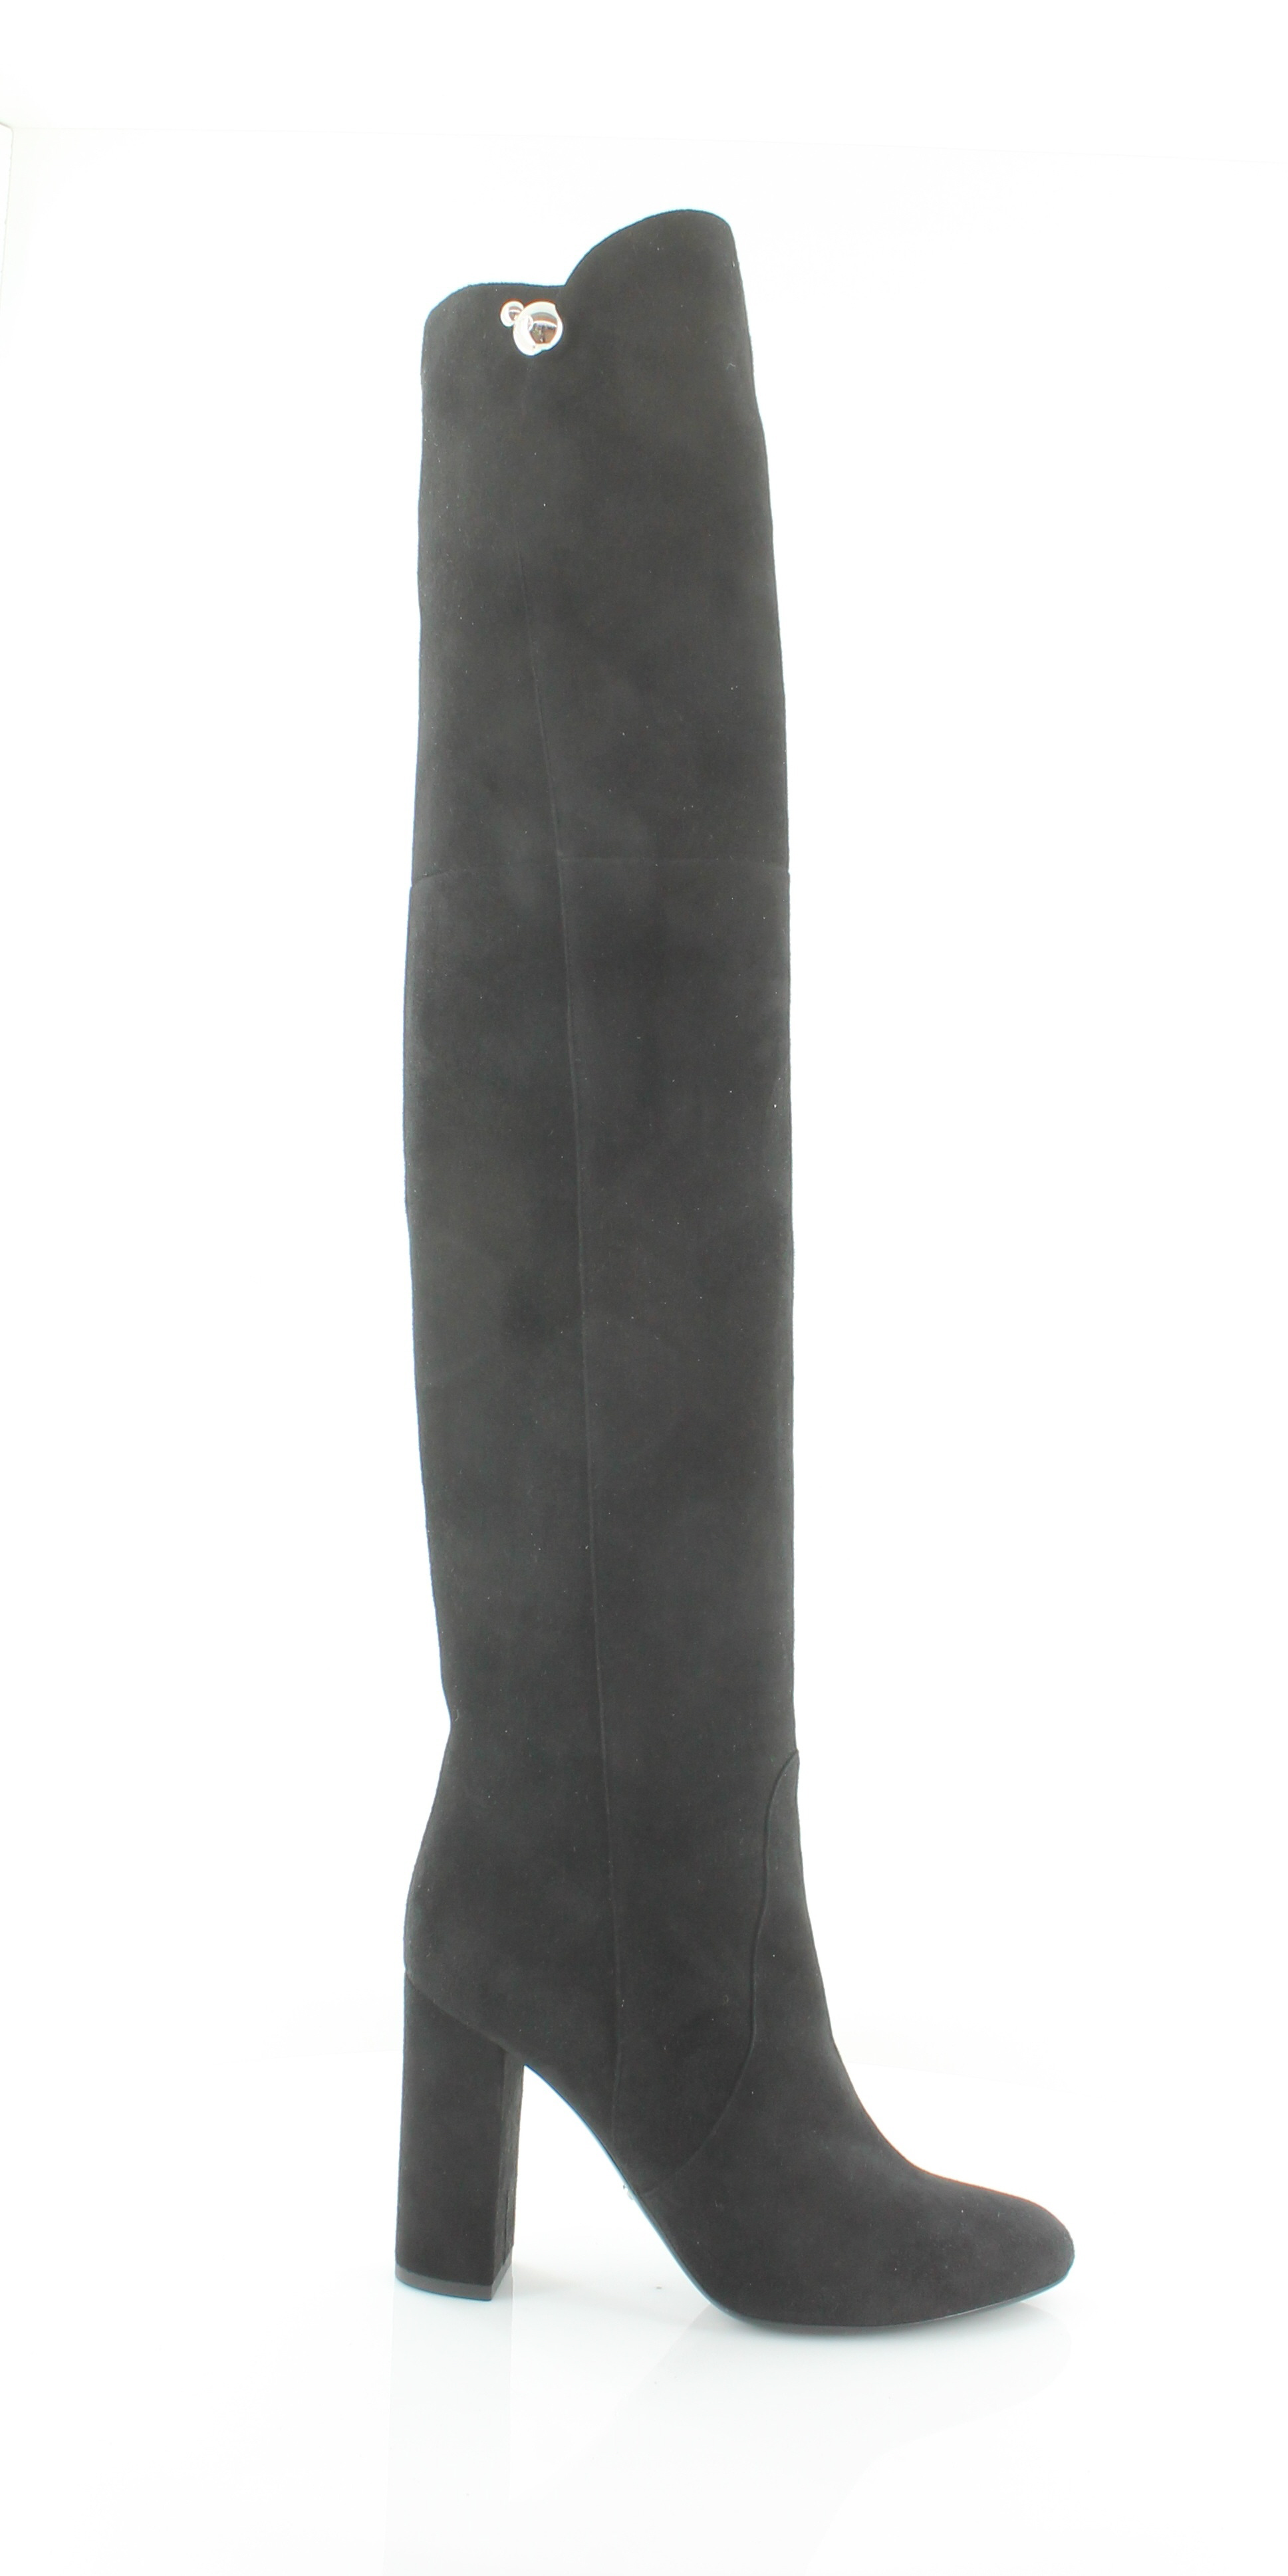 28554d5eb14 Details about Christian Dior New Charms Boot Black Womens Shoes Size 6.5 M  Boots MSRP $1650